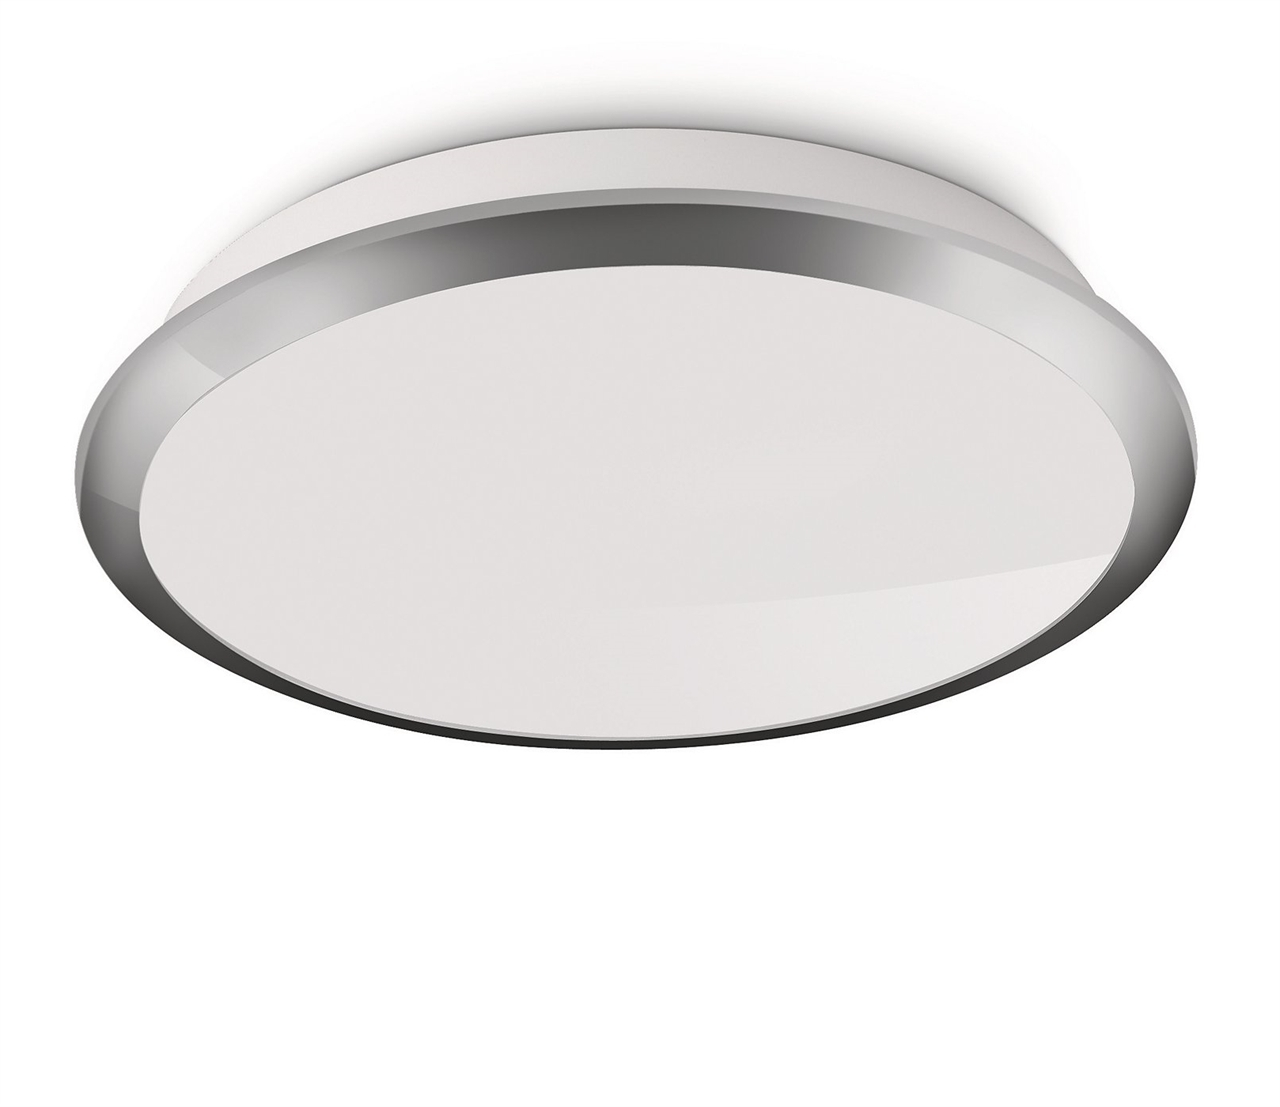 Philips Outdoor Ceiling Lights In Well Known K Lighting Supplies – Indoor, Outdoor & Led Lighting Specialists (View 2 of 20)